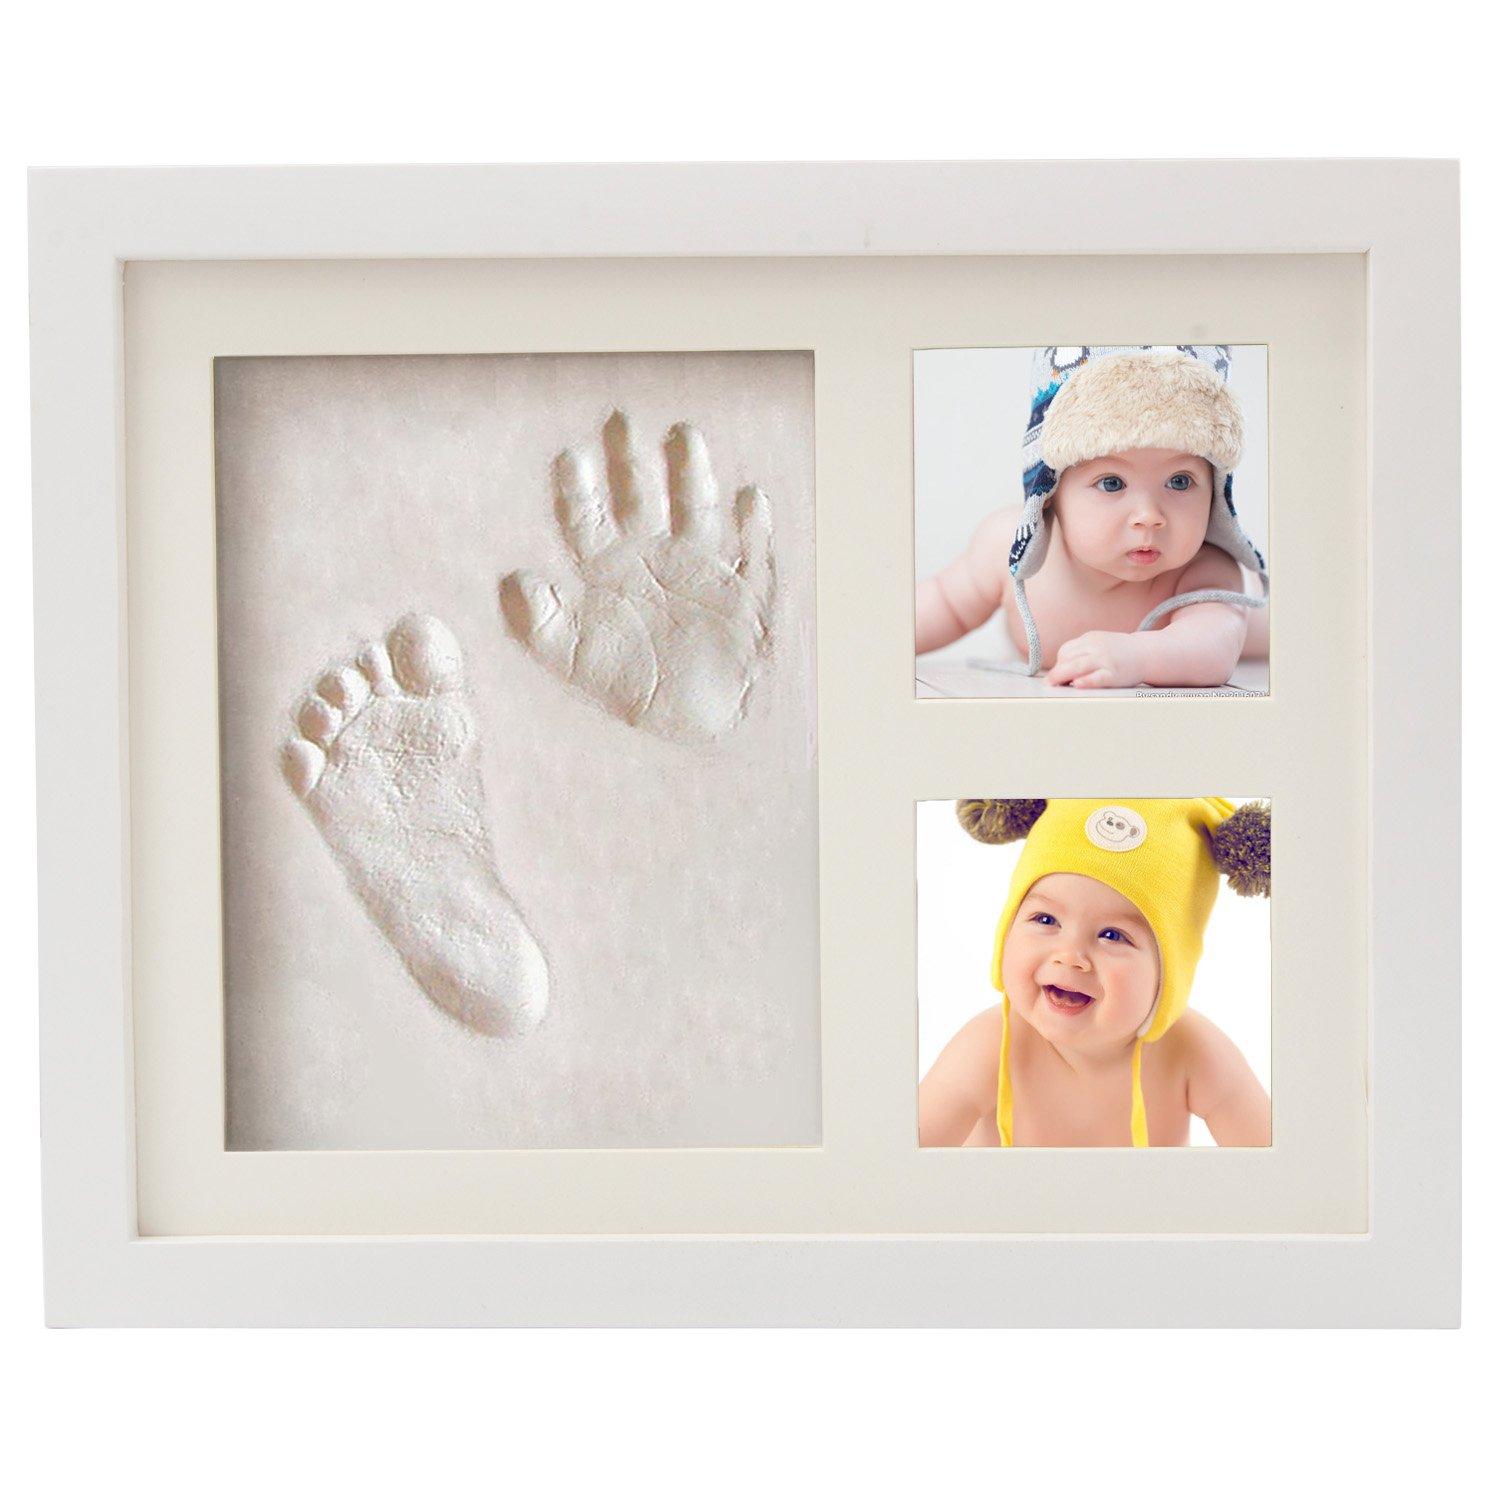 Discoball Baby Handprint and Footprint Picture Frame Baby Hand and Footprint Kits Twins Photo Frame Wood Frame with Safe Clay / Black Ink Pad / Print Paper for Family Keepsake Shower Preserves Priceless Memories Best Gift For Baby Registry